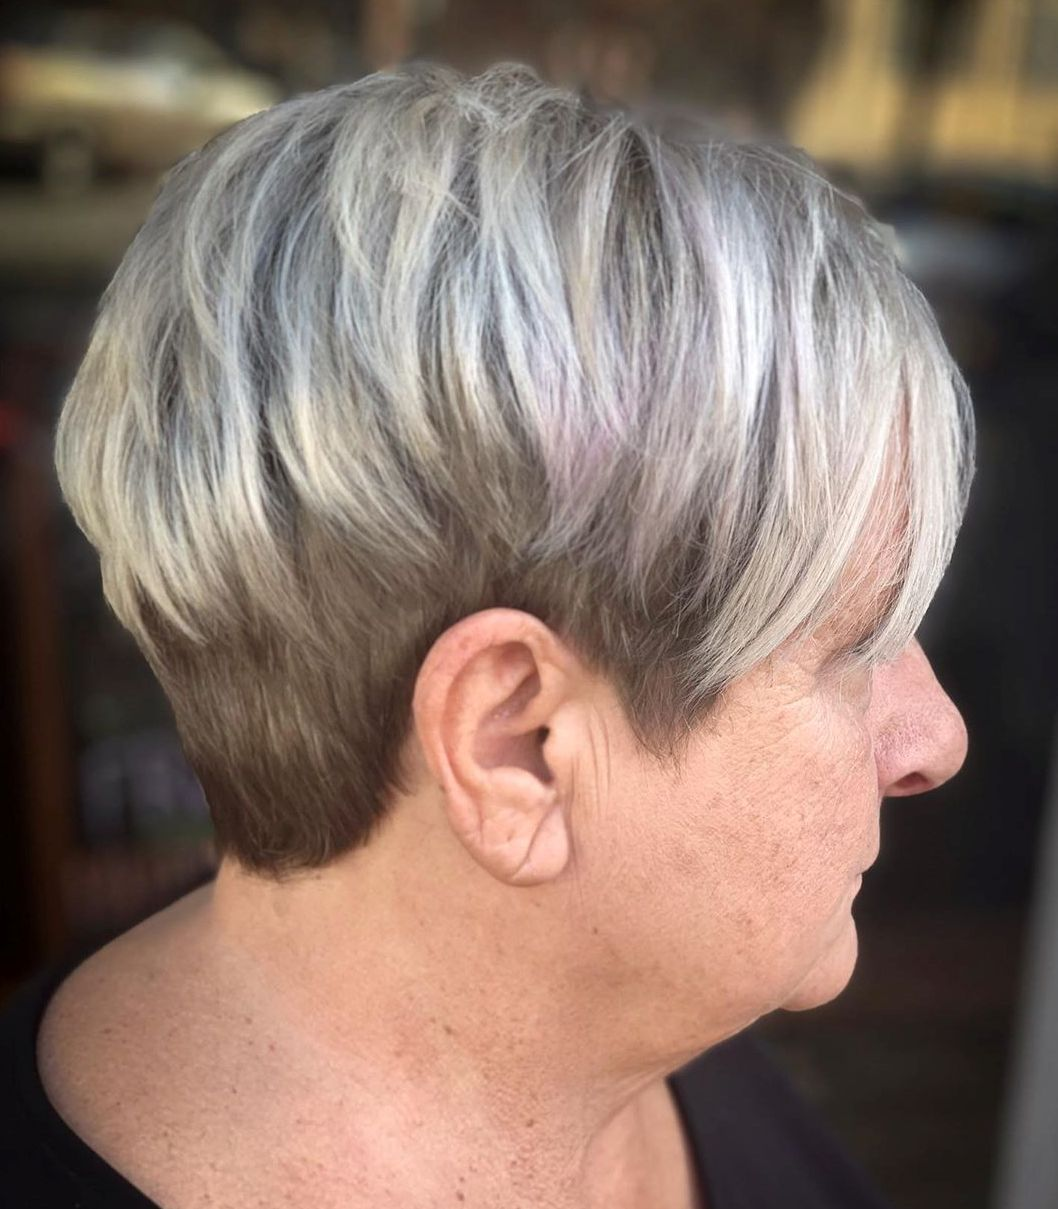 Undercut Hairstyle with Silver Top